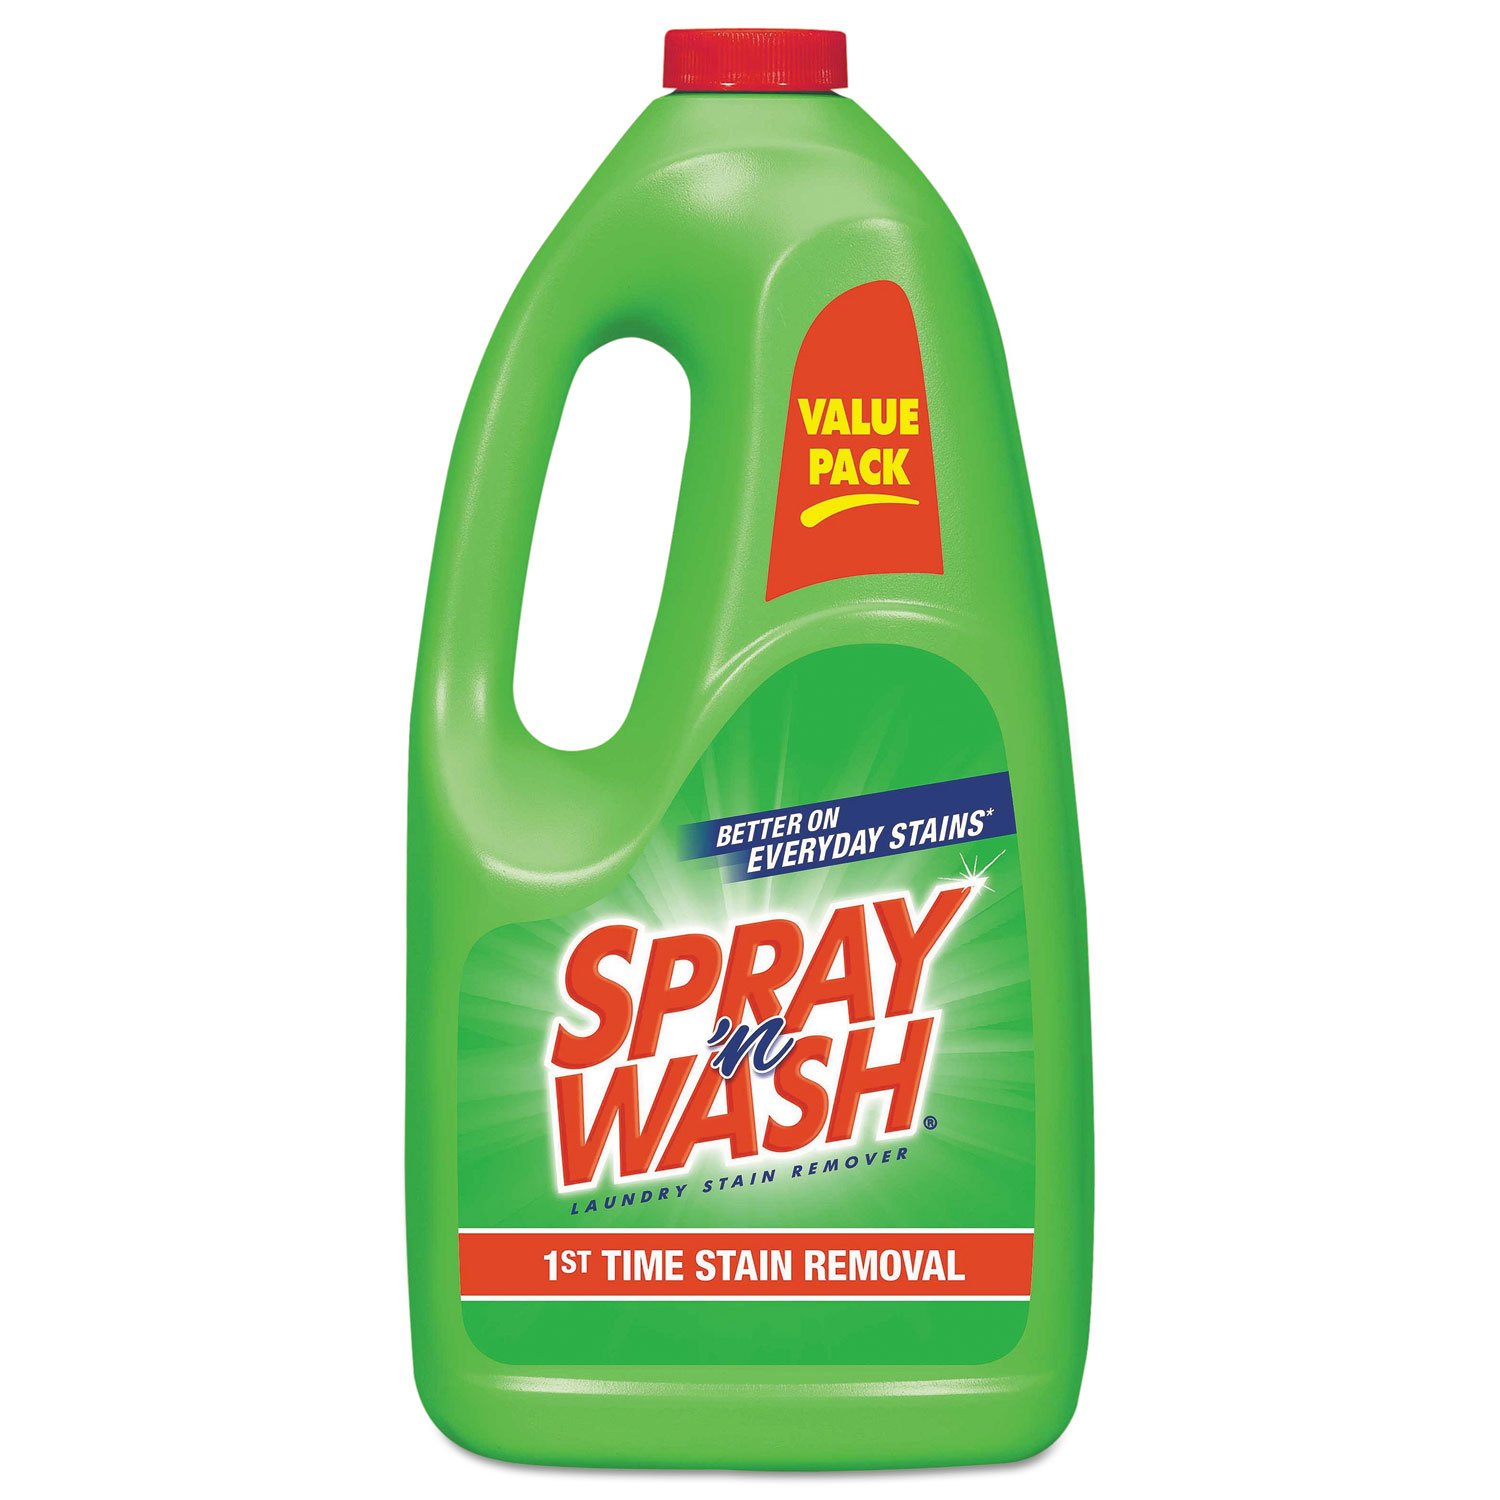 Spray 'n Wash Pre-Treat Laundry Stain Remover Refill, 60 fl oz Bottle (Pack of 6)